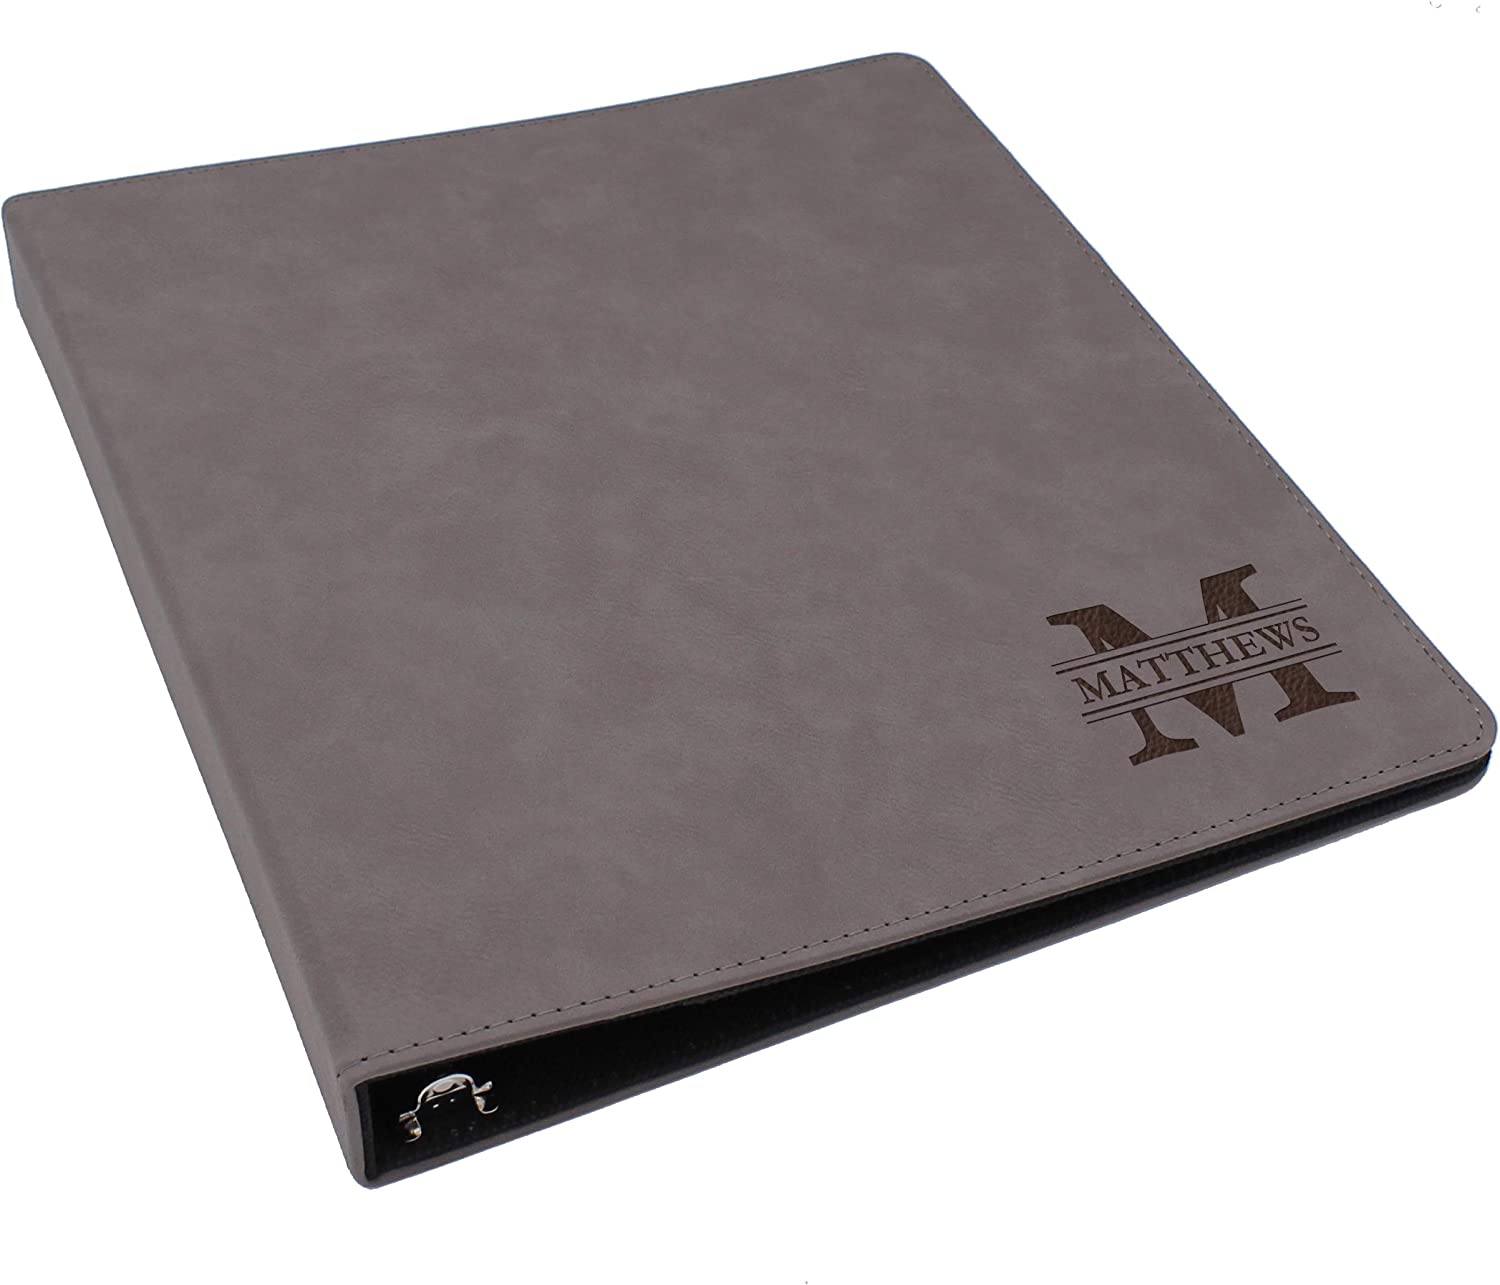 My Personal Memories Custom Personalized Ri 55% OFF 3 1 Free shipping anywhere in the nation Leatherette inch